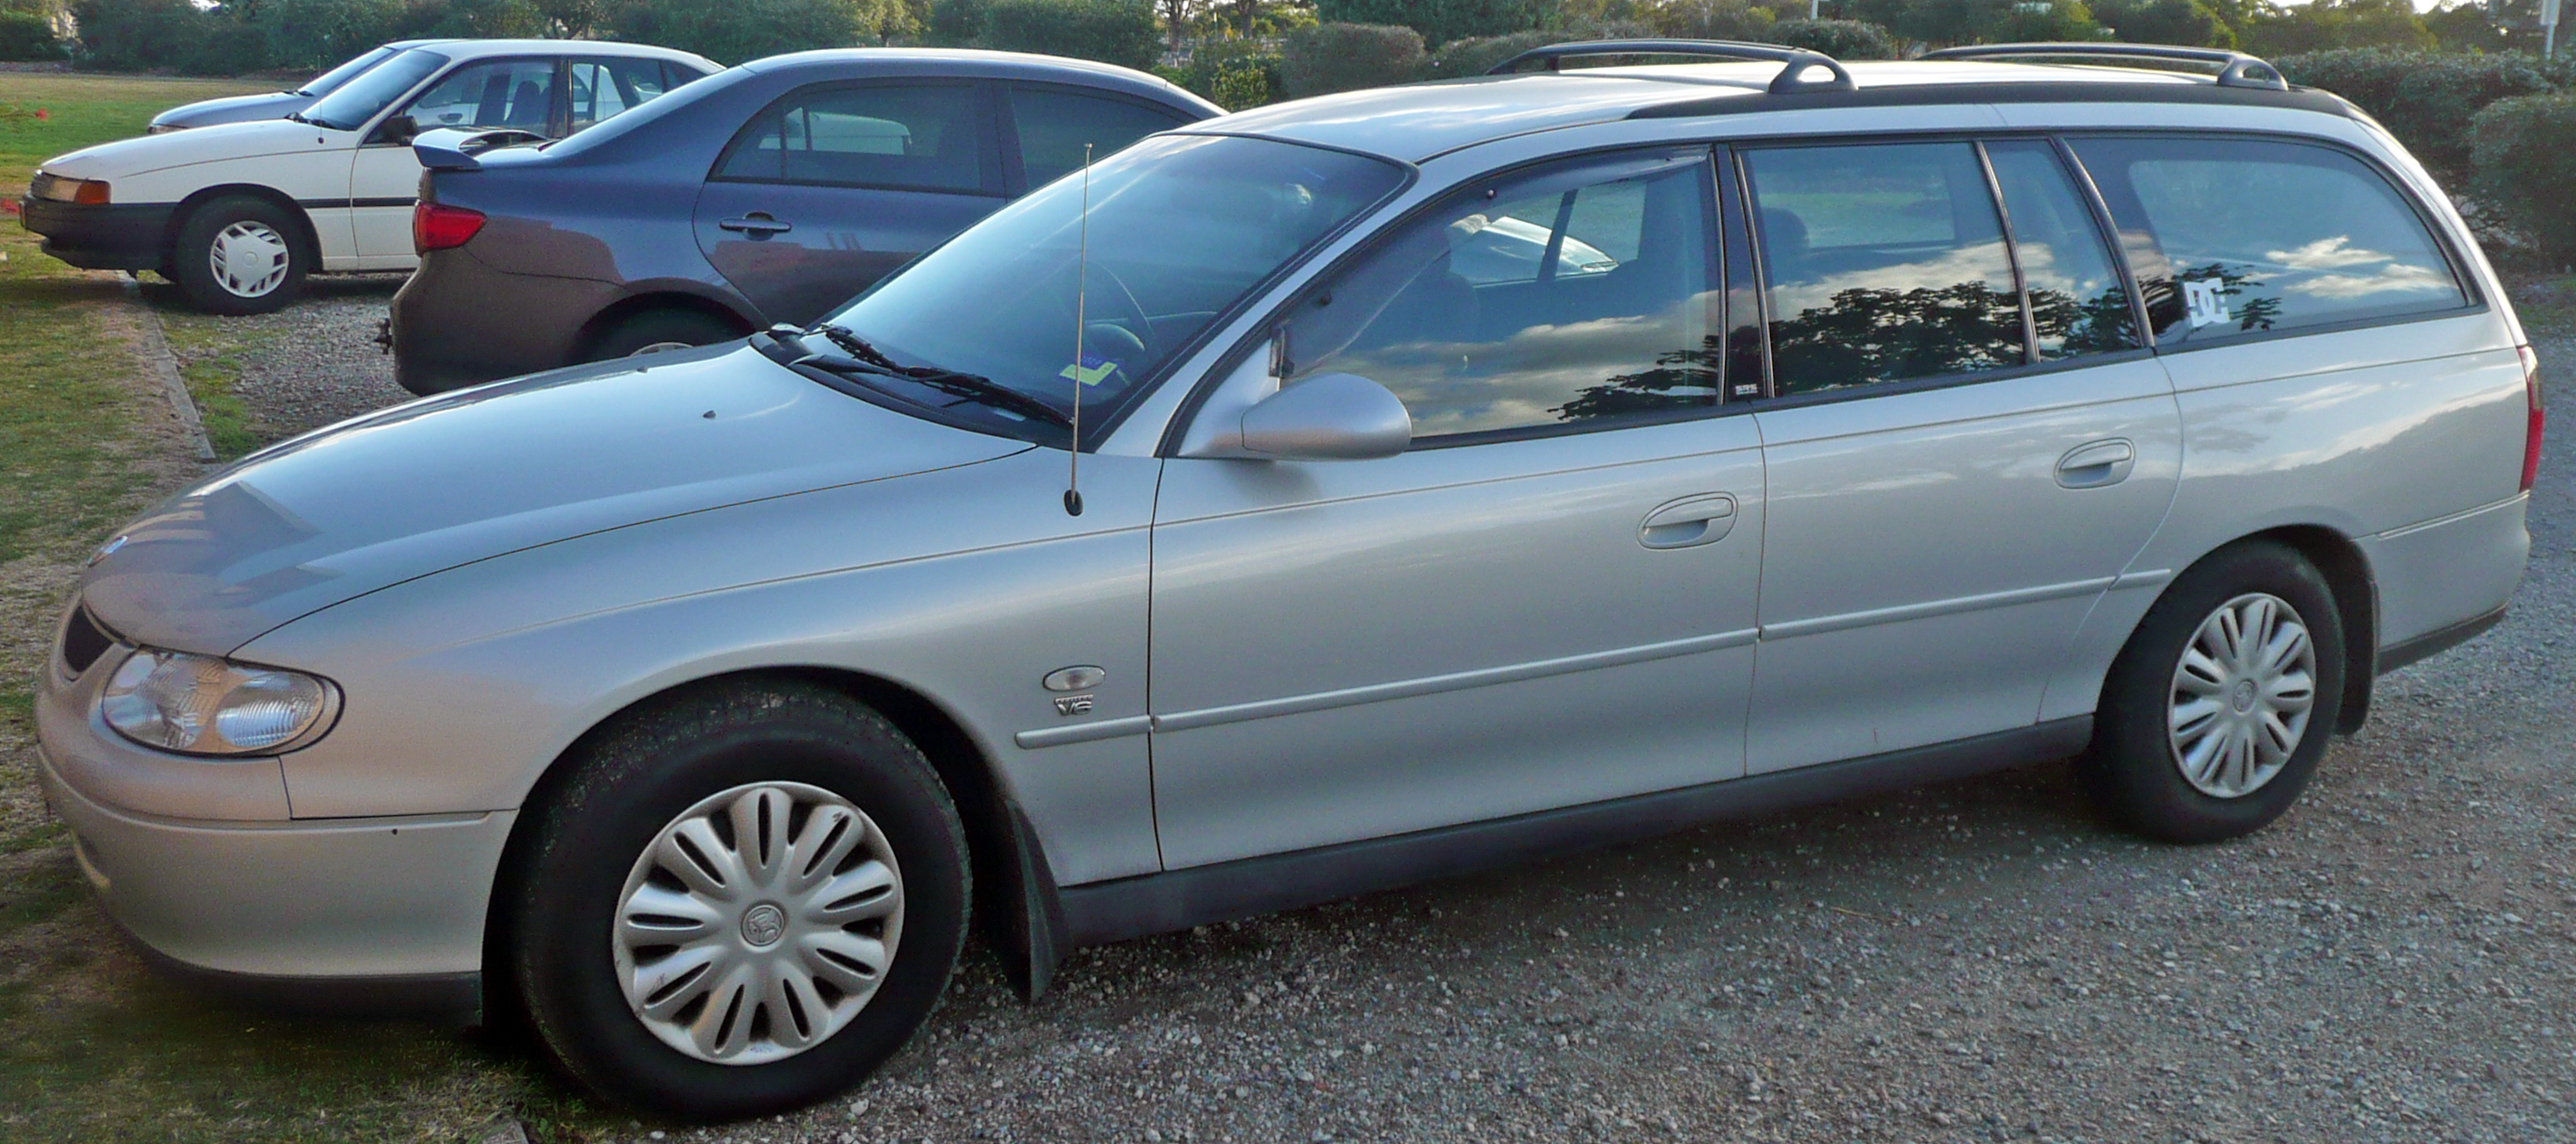 Honda Accord 2000 >> File:1999-2000 Holden VT II Commodore Acclaim station